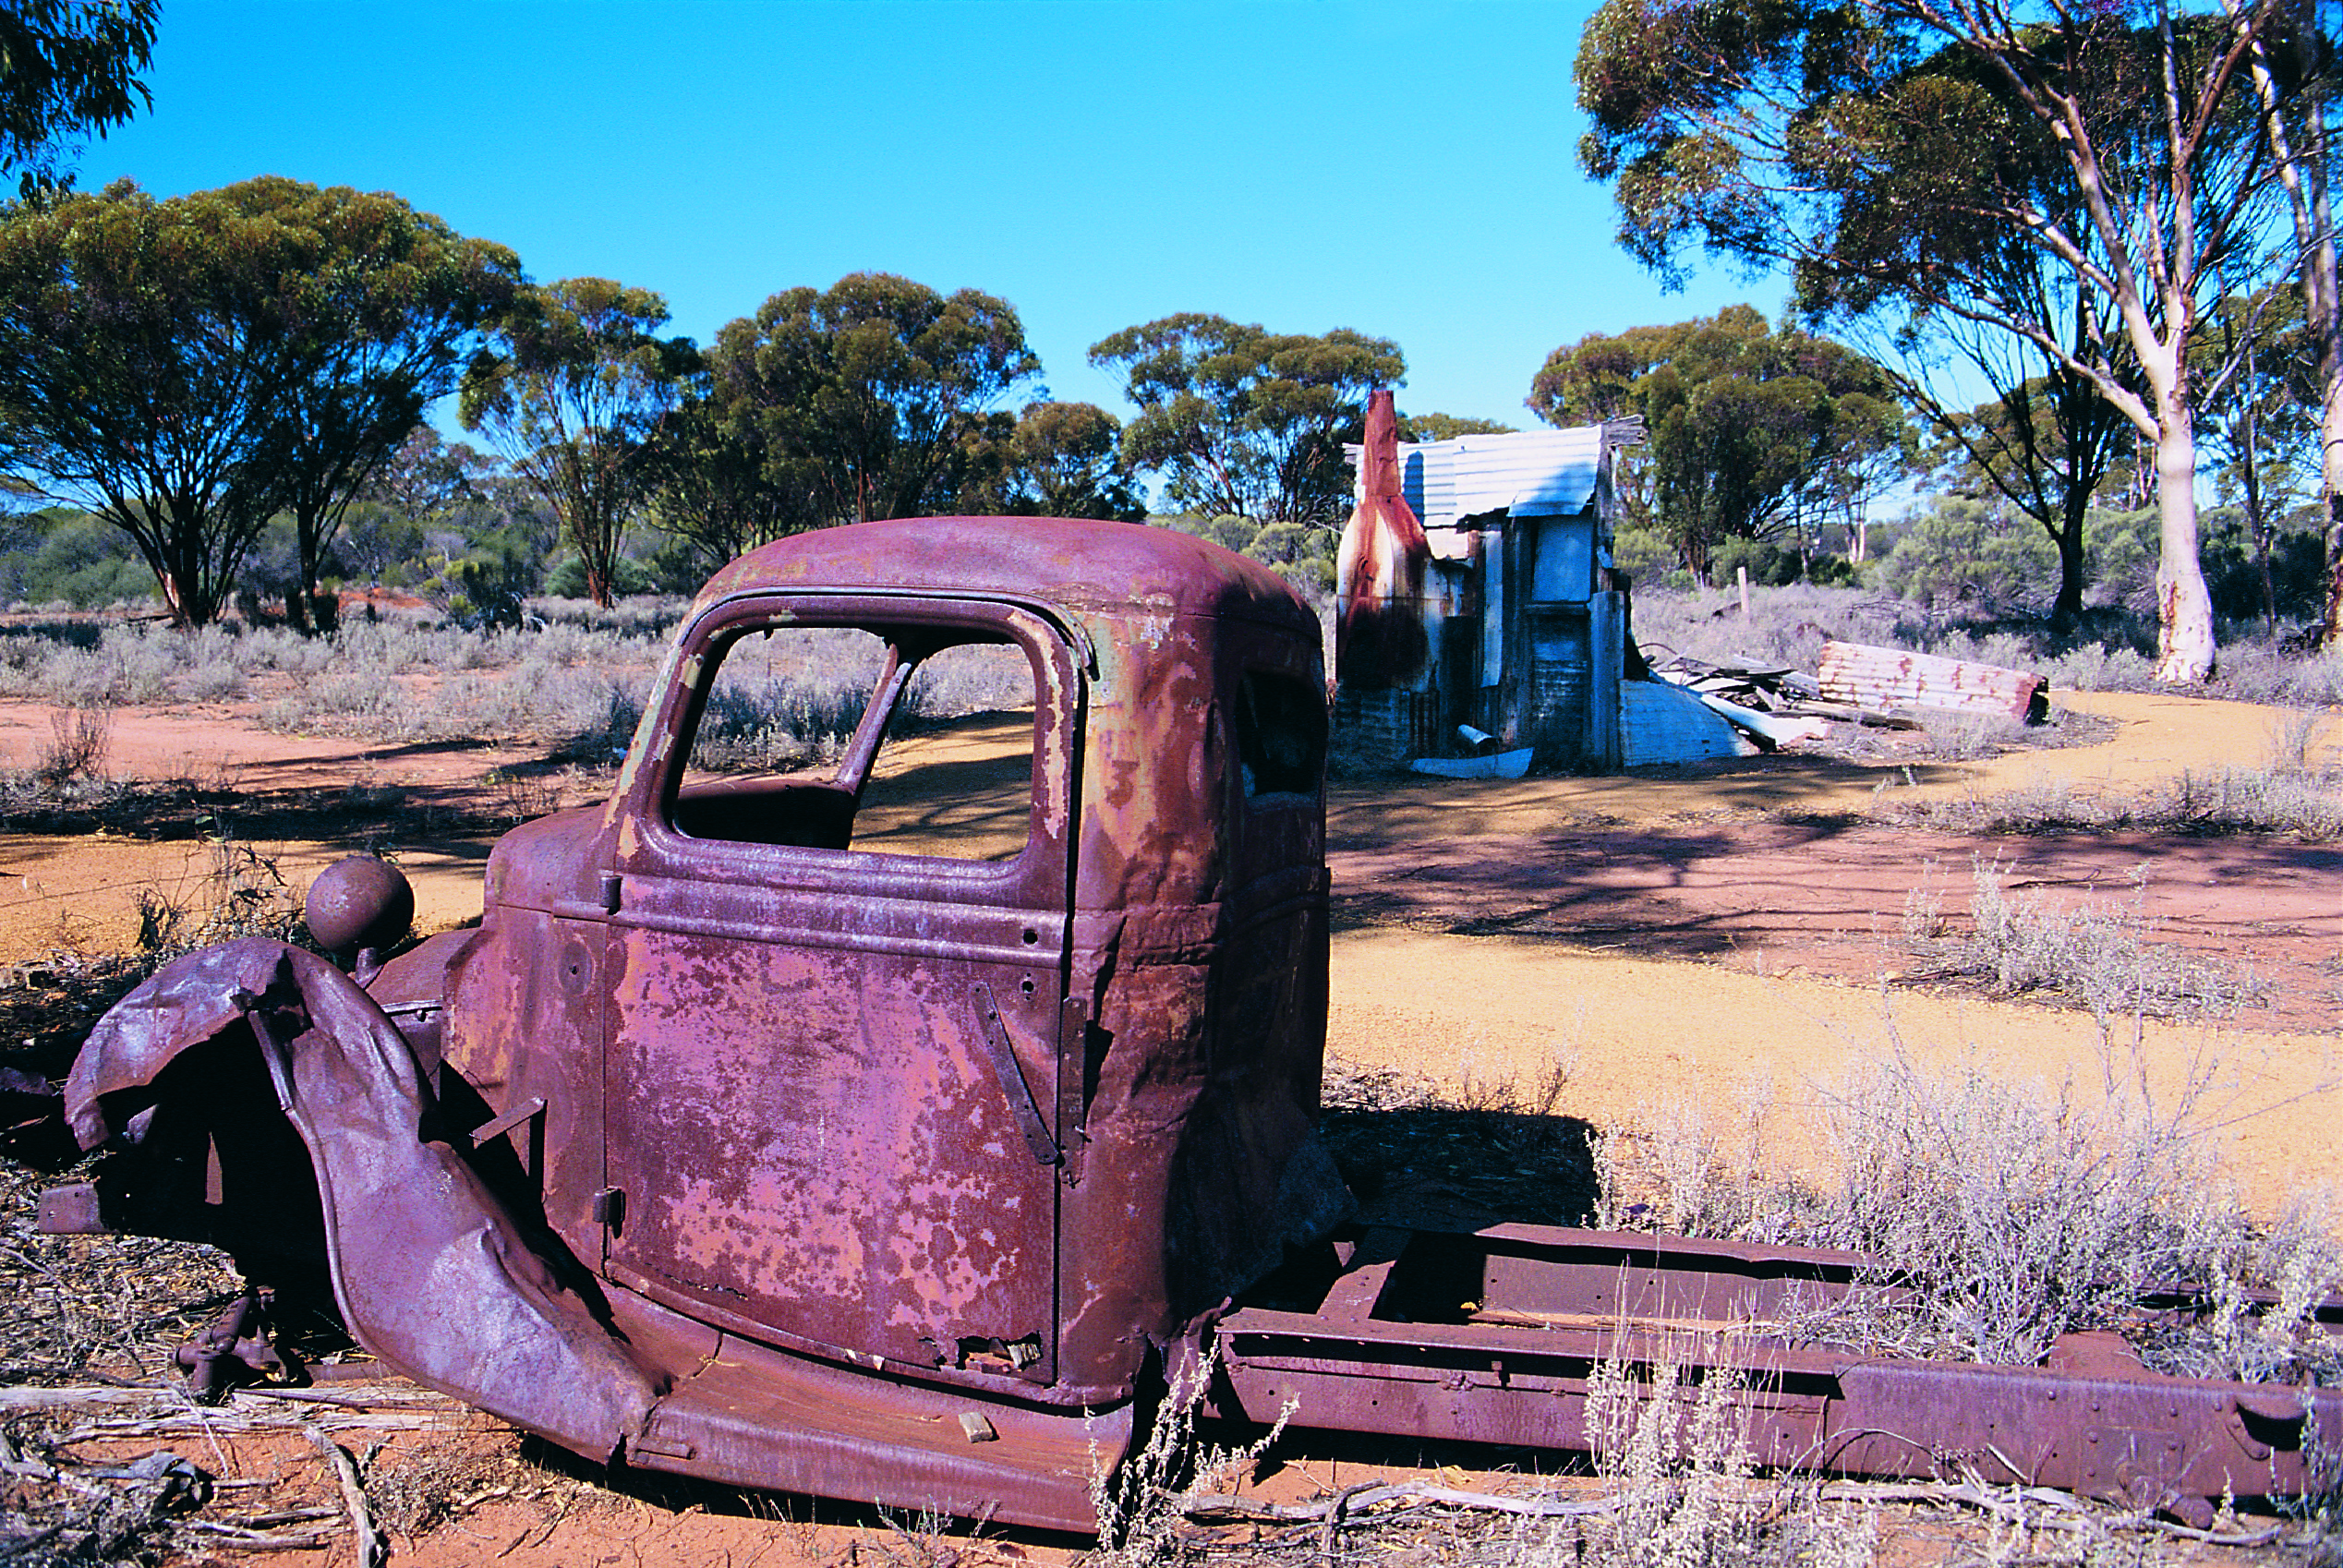 A rusting truck and shed, remains of the once thriving place.